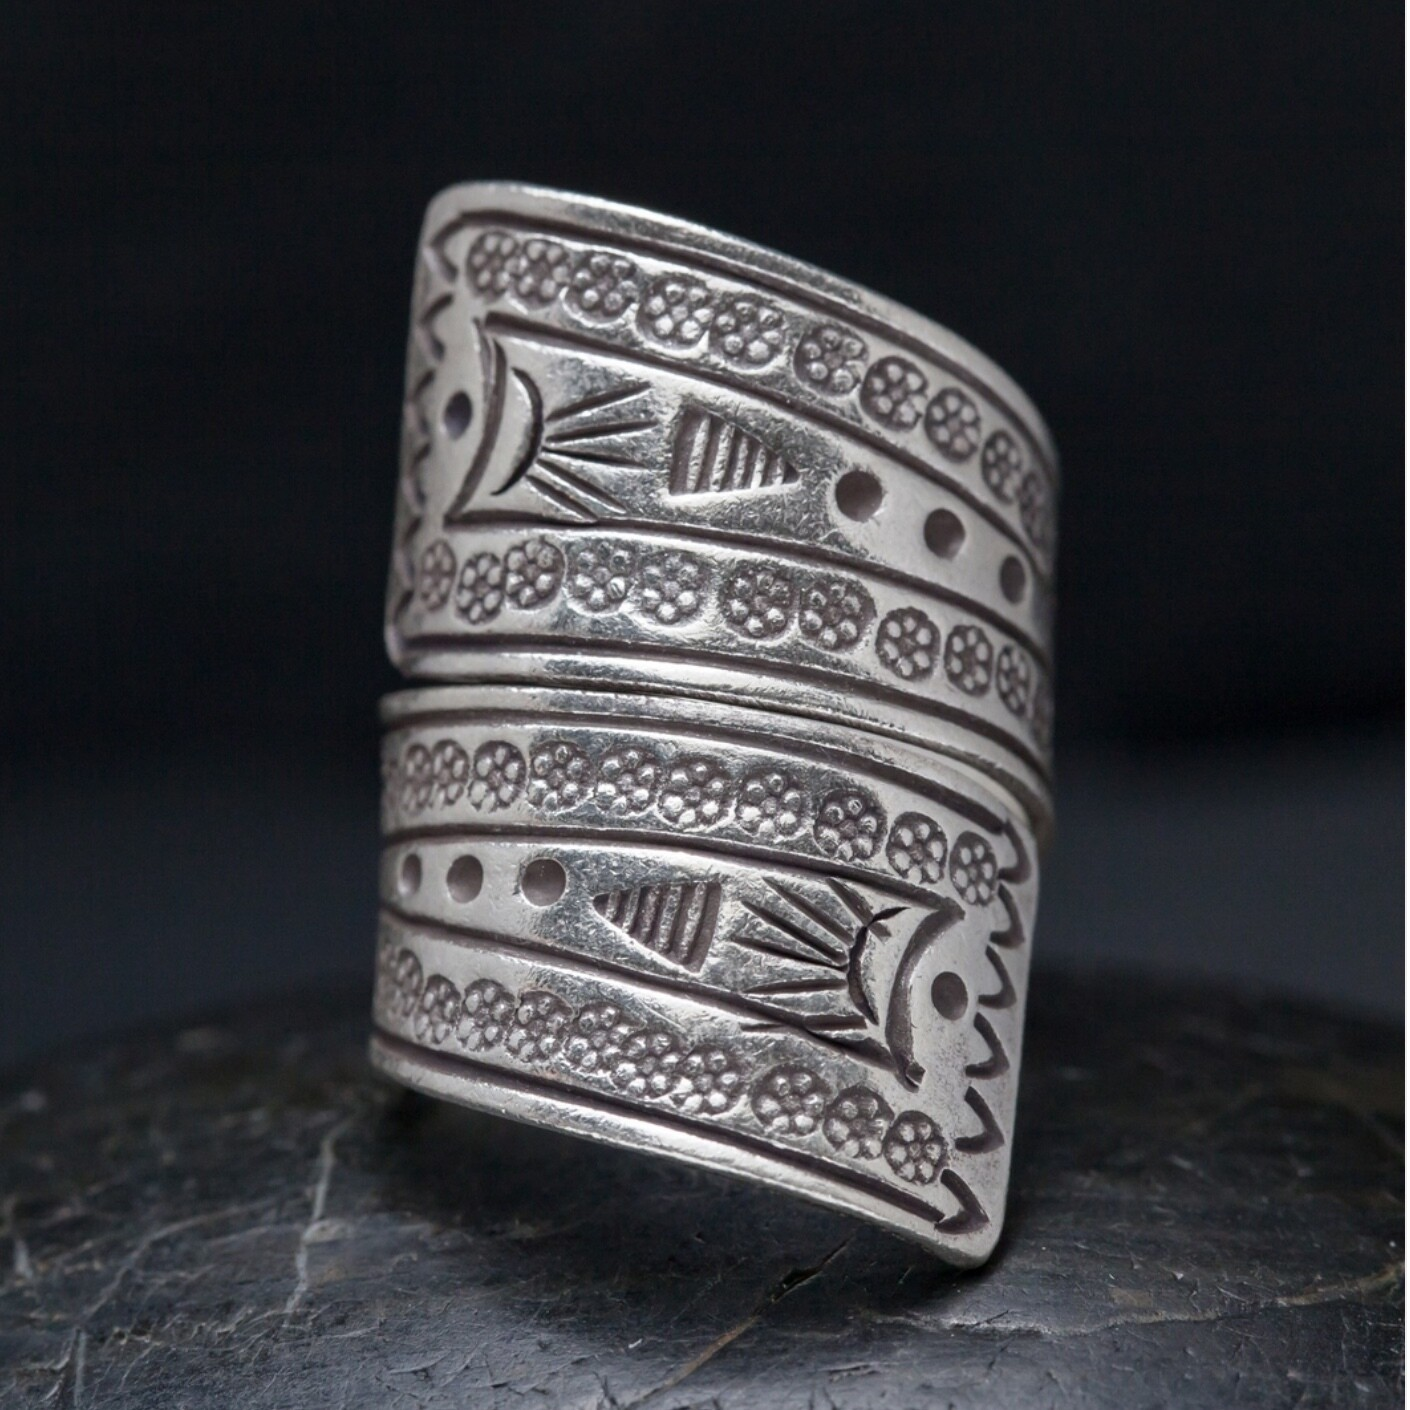 Hill Tribe Silver Wrap Around Band - RB27